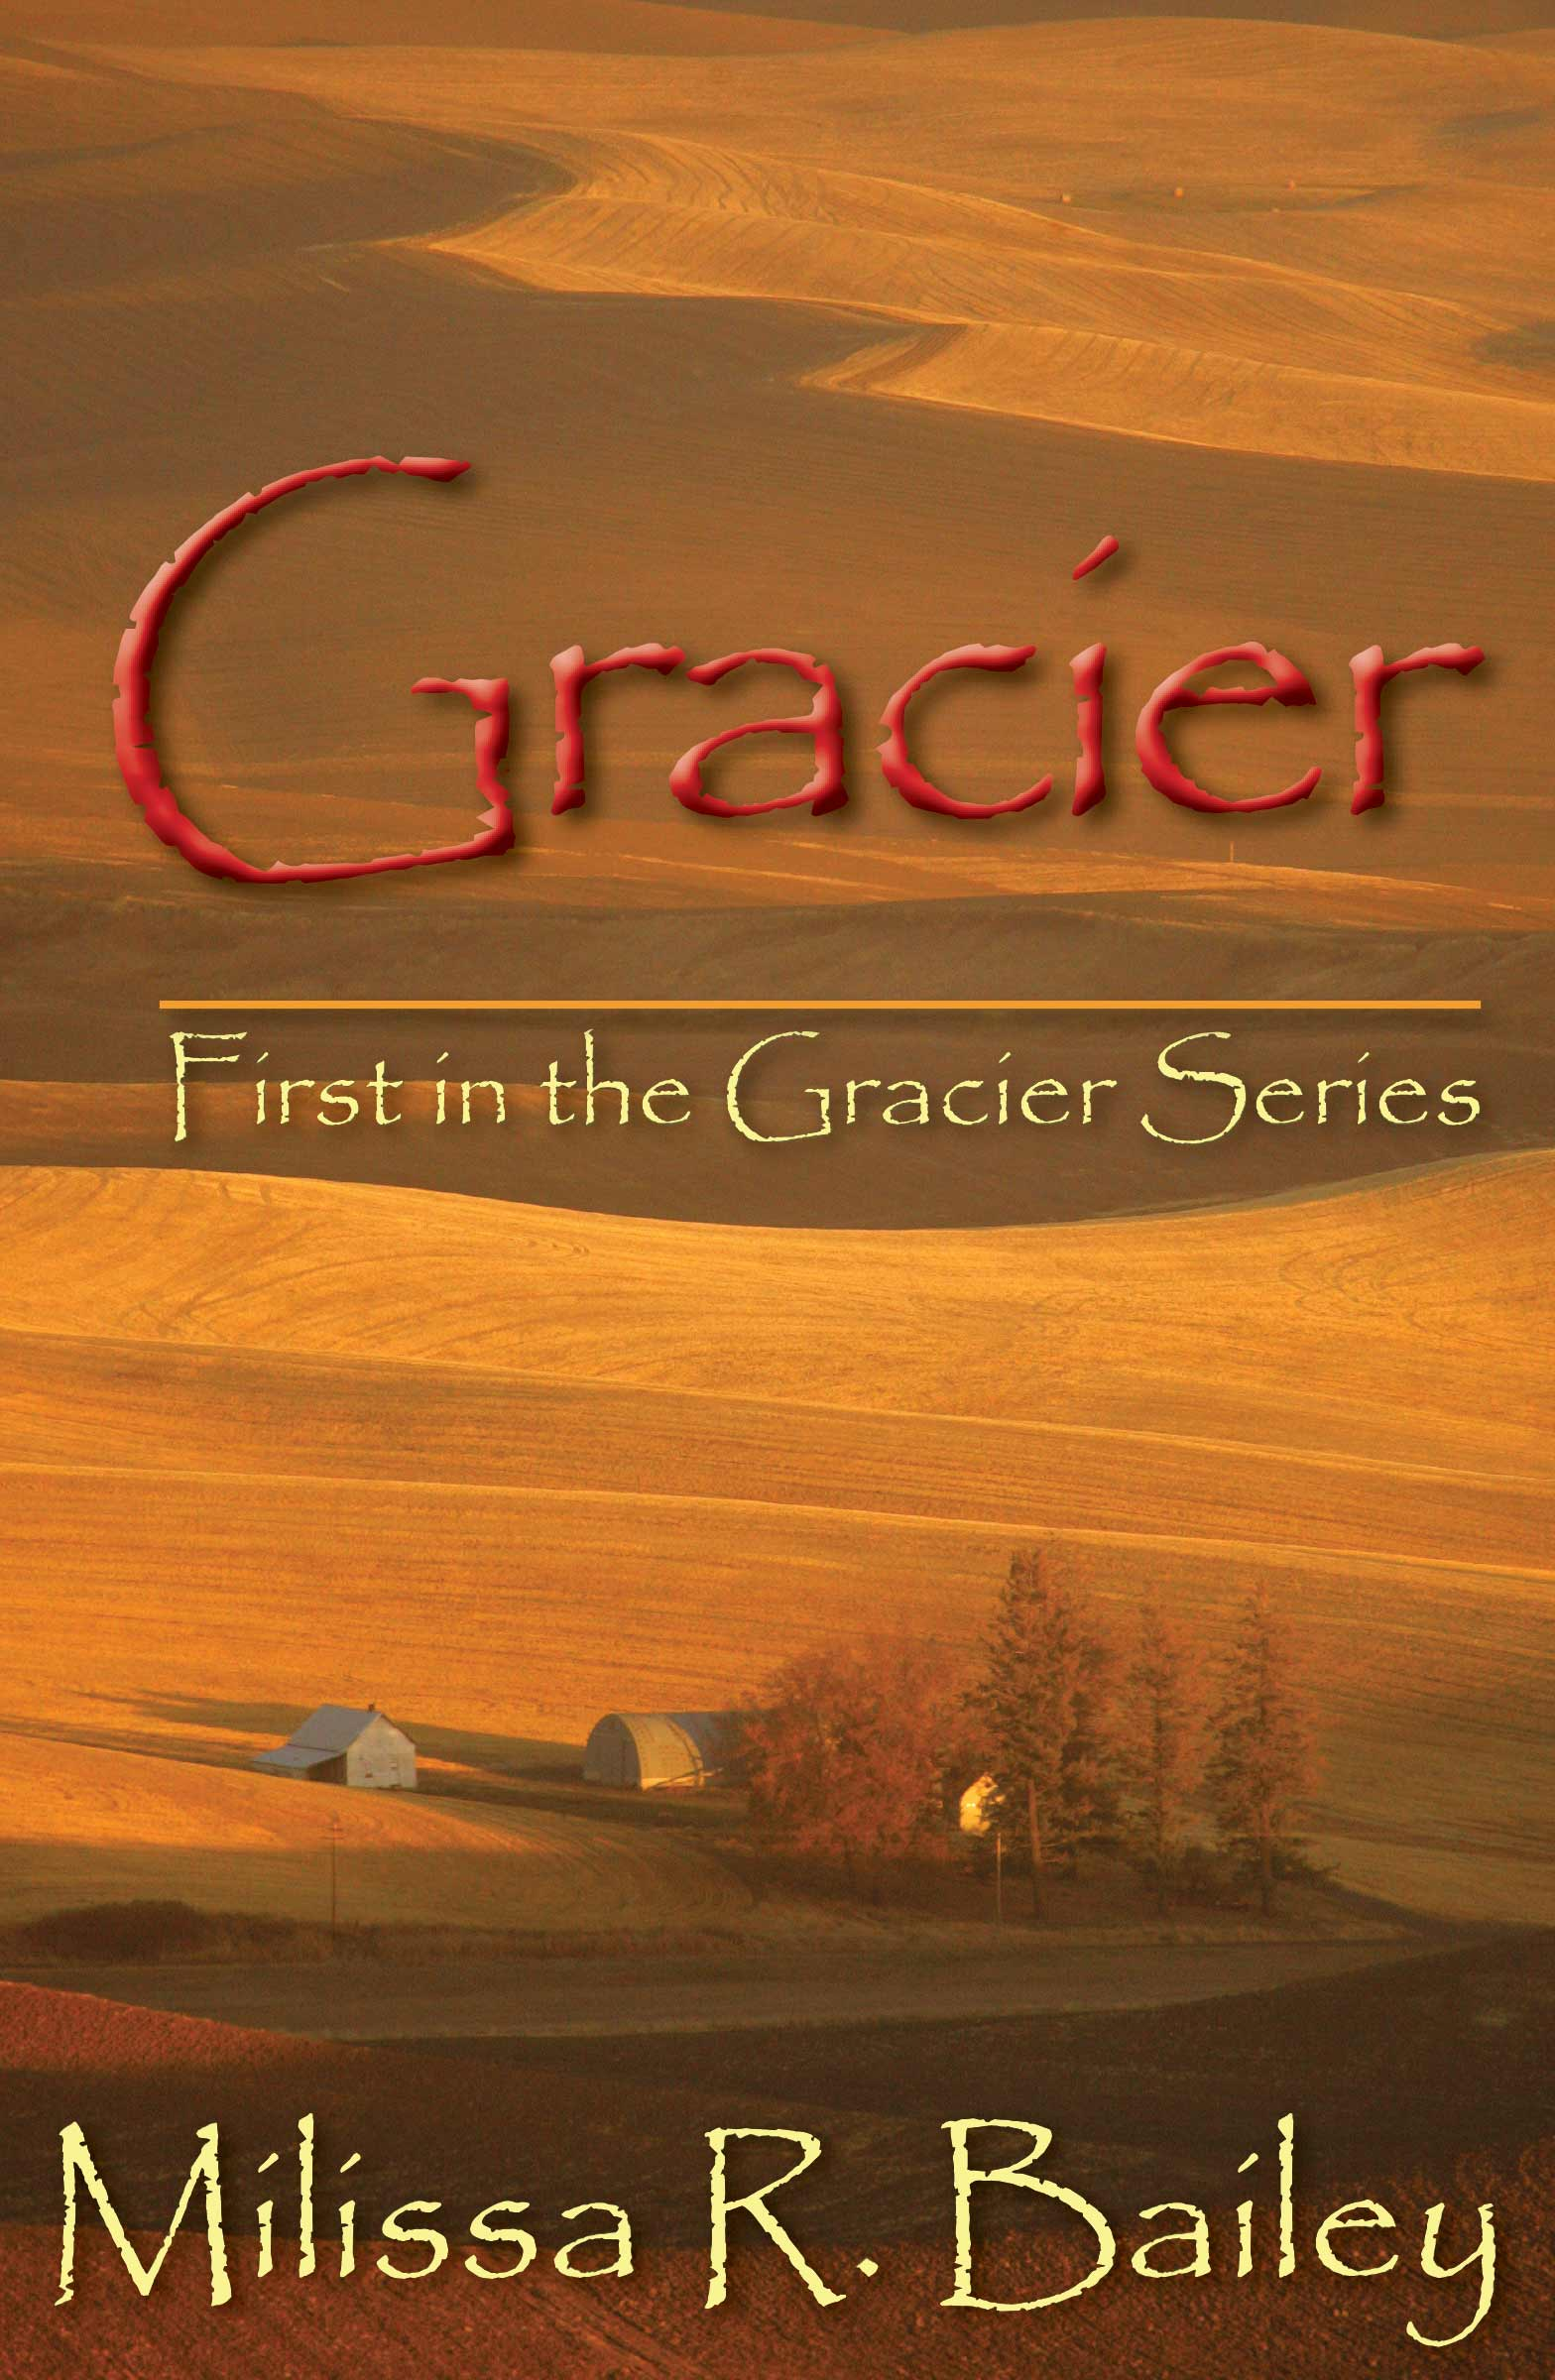 Book cover of Gracier